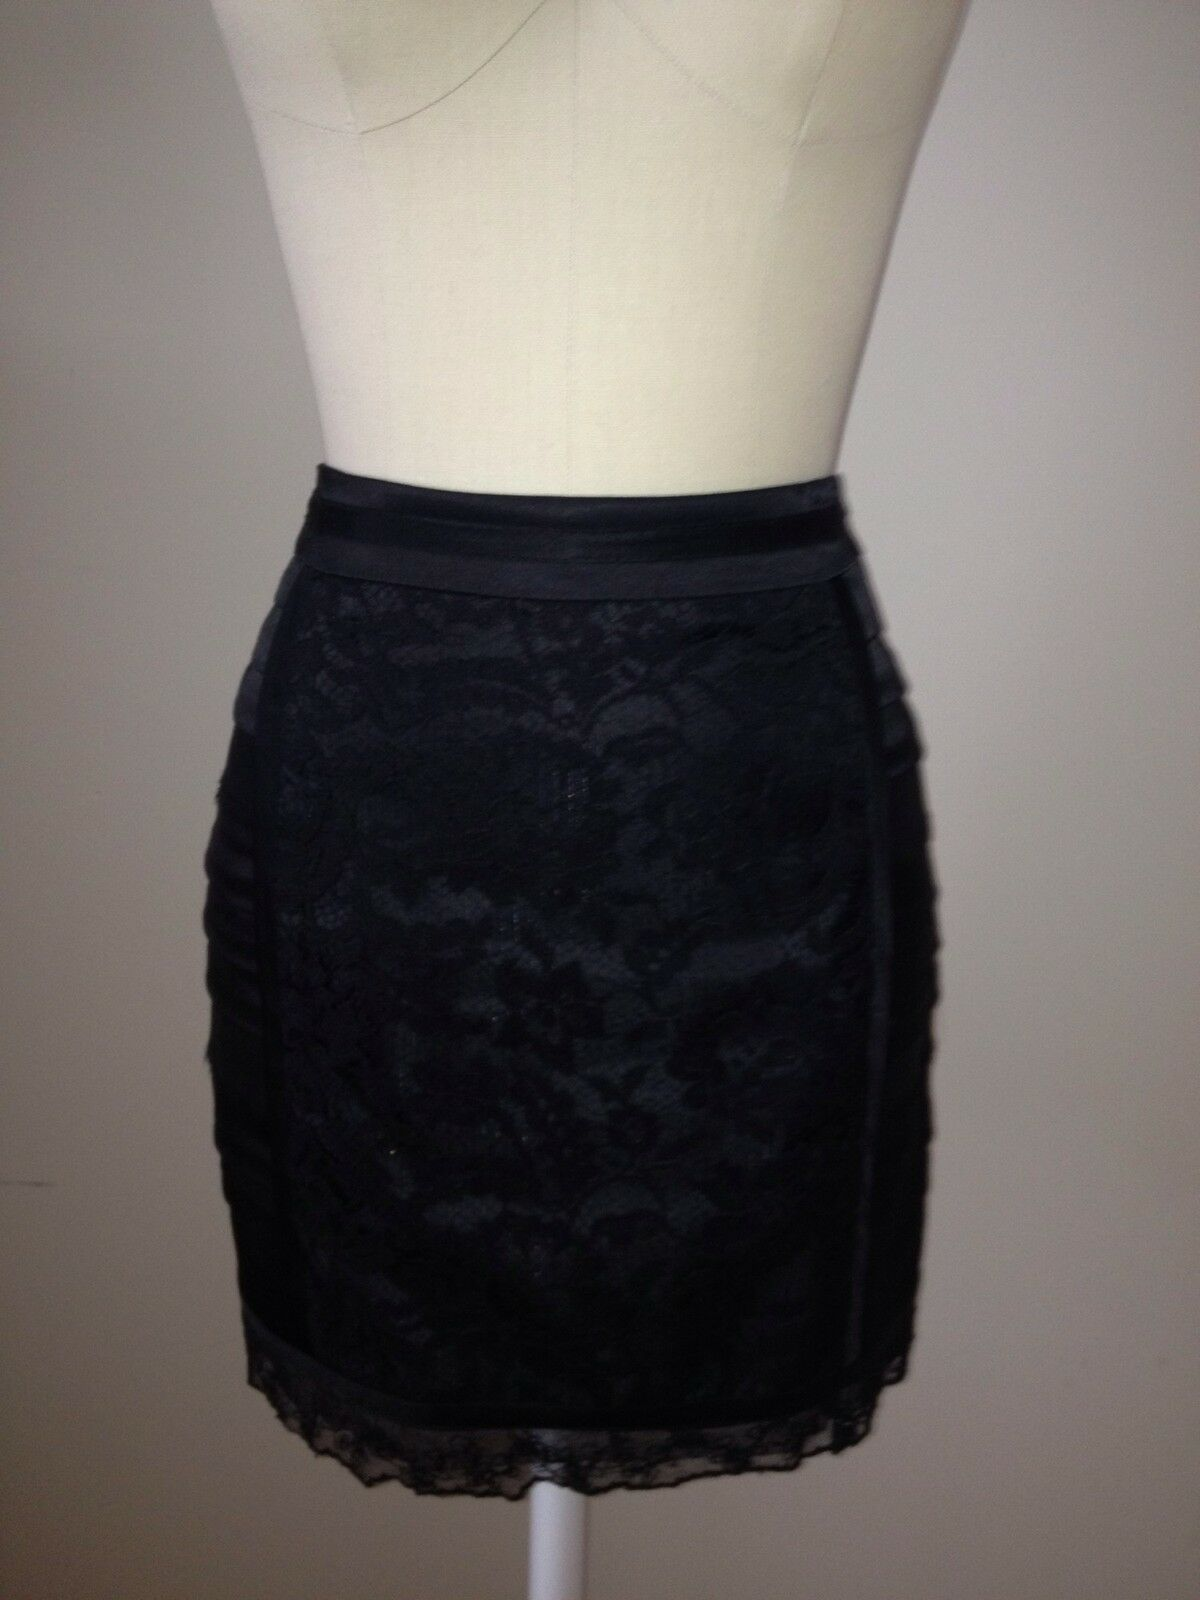 Nanette Lepore Lace And Silk Skirt  Very Flattering. Size 4.